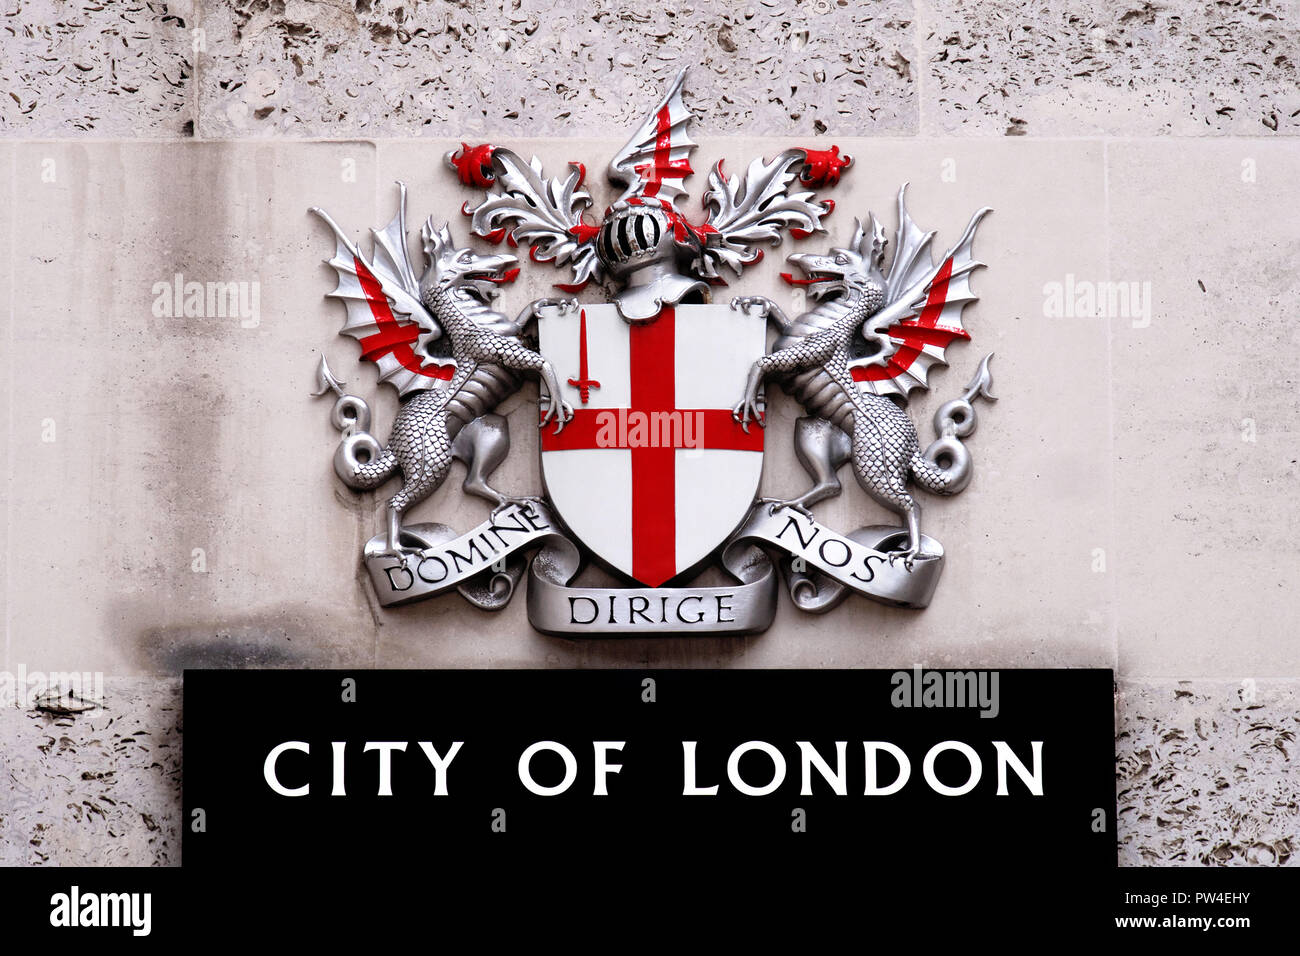 Coat of arms of the City of London - Stock Image